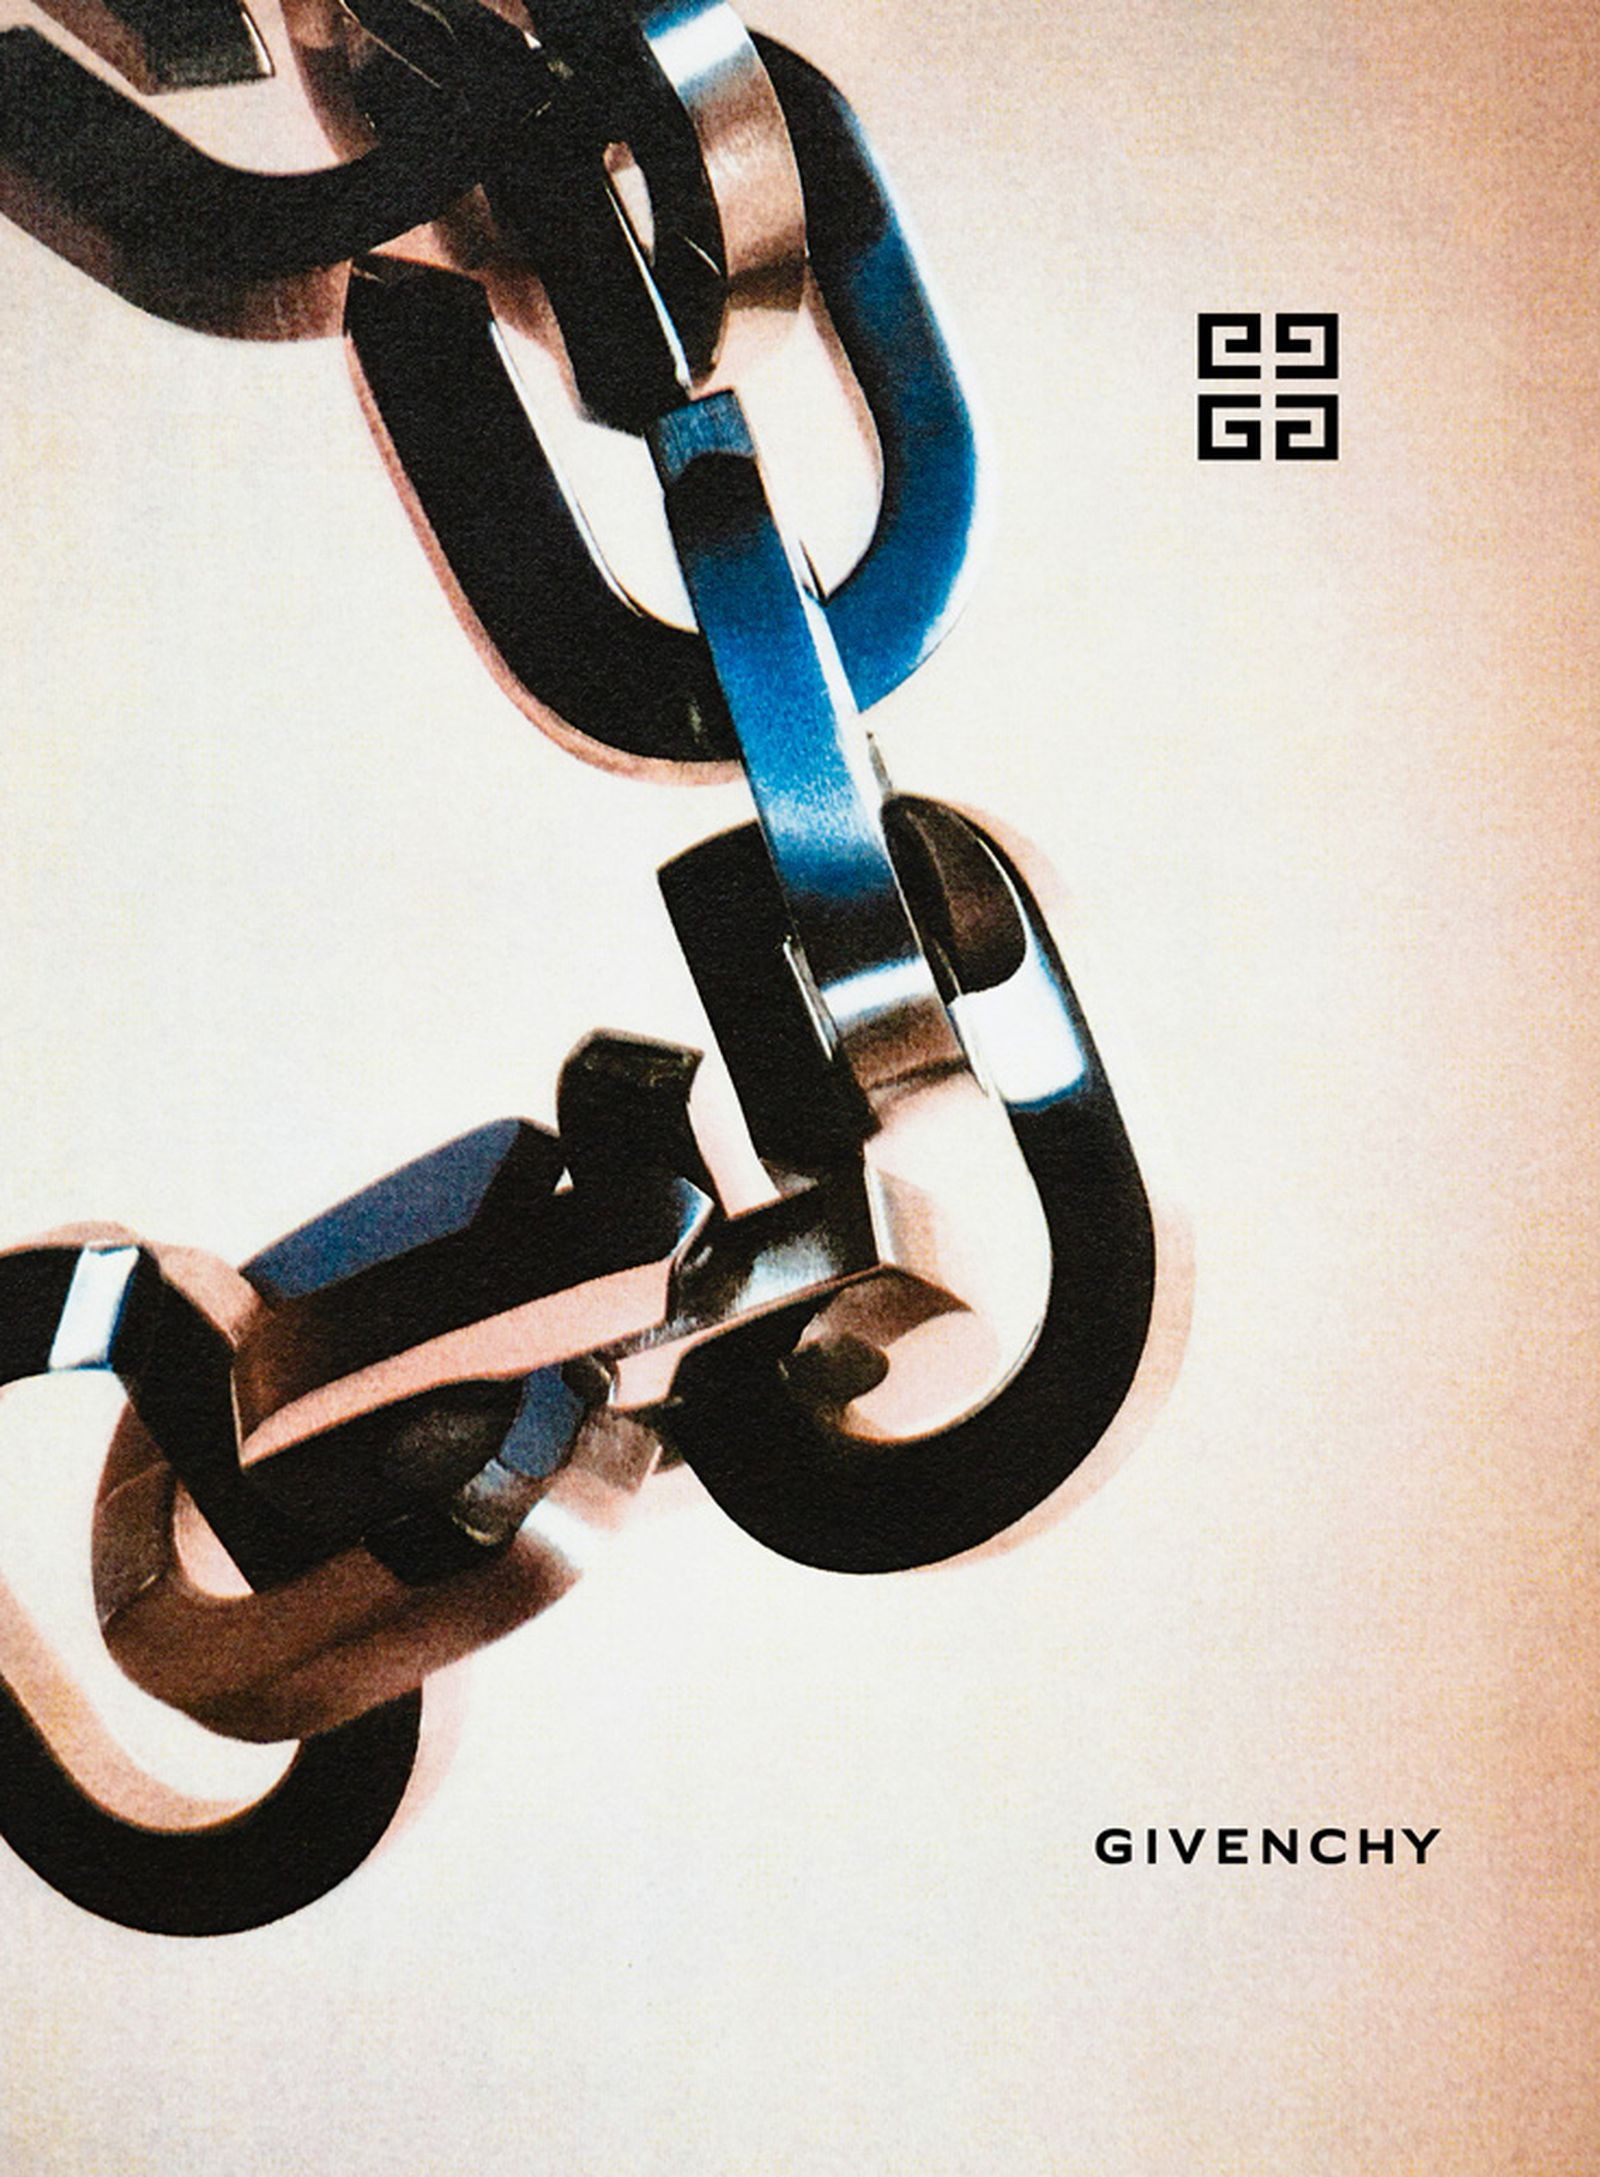 givenchy-new-campaign-04